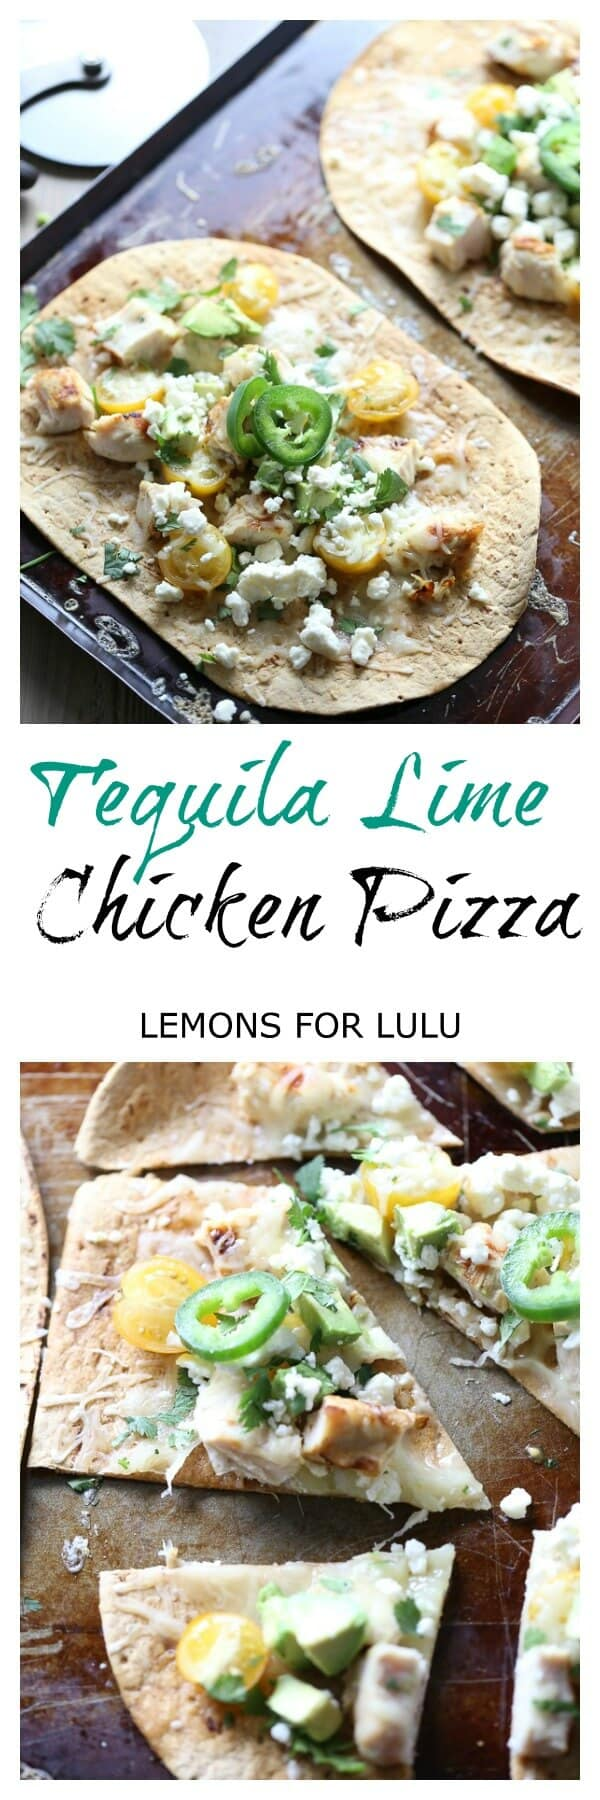 Flatbread pizza with tequila lime chicken is one easy dinner your whole family will love! lemonsforlulu.com